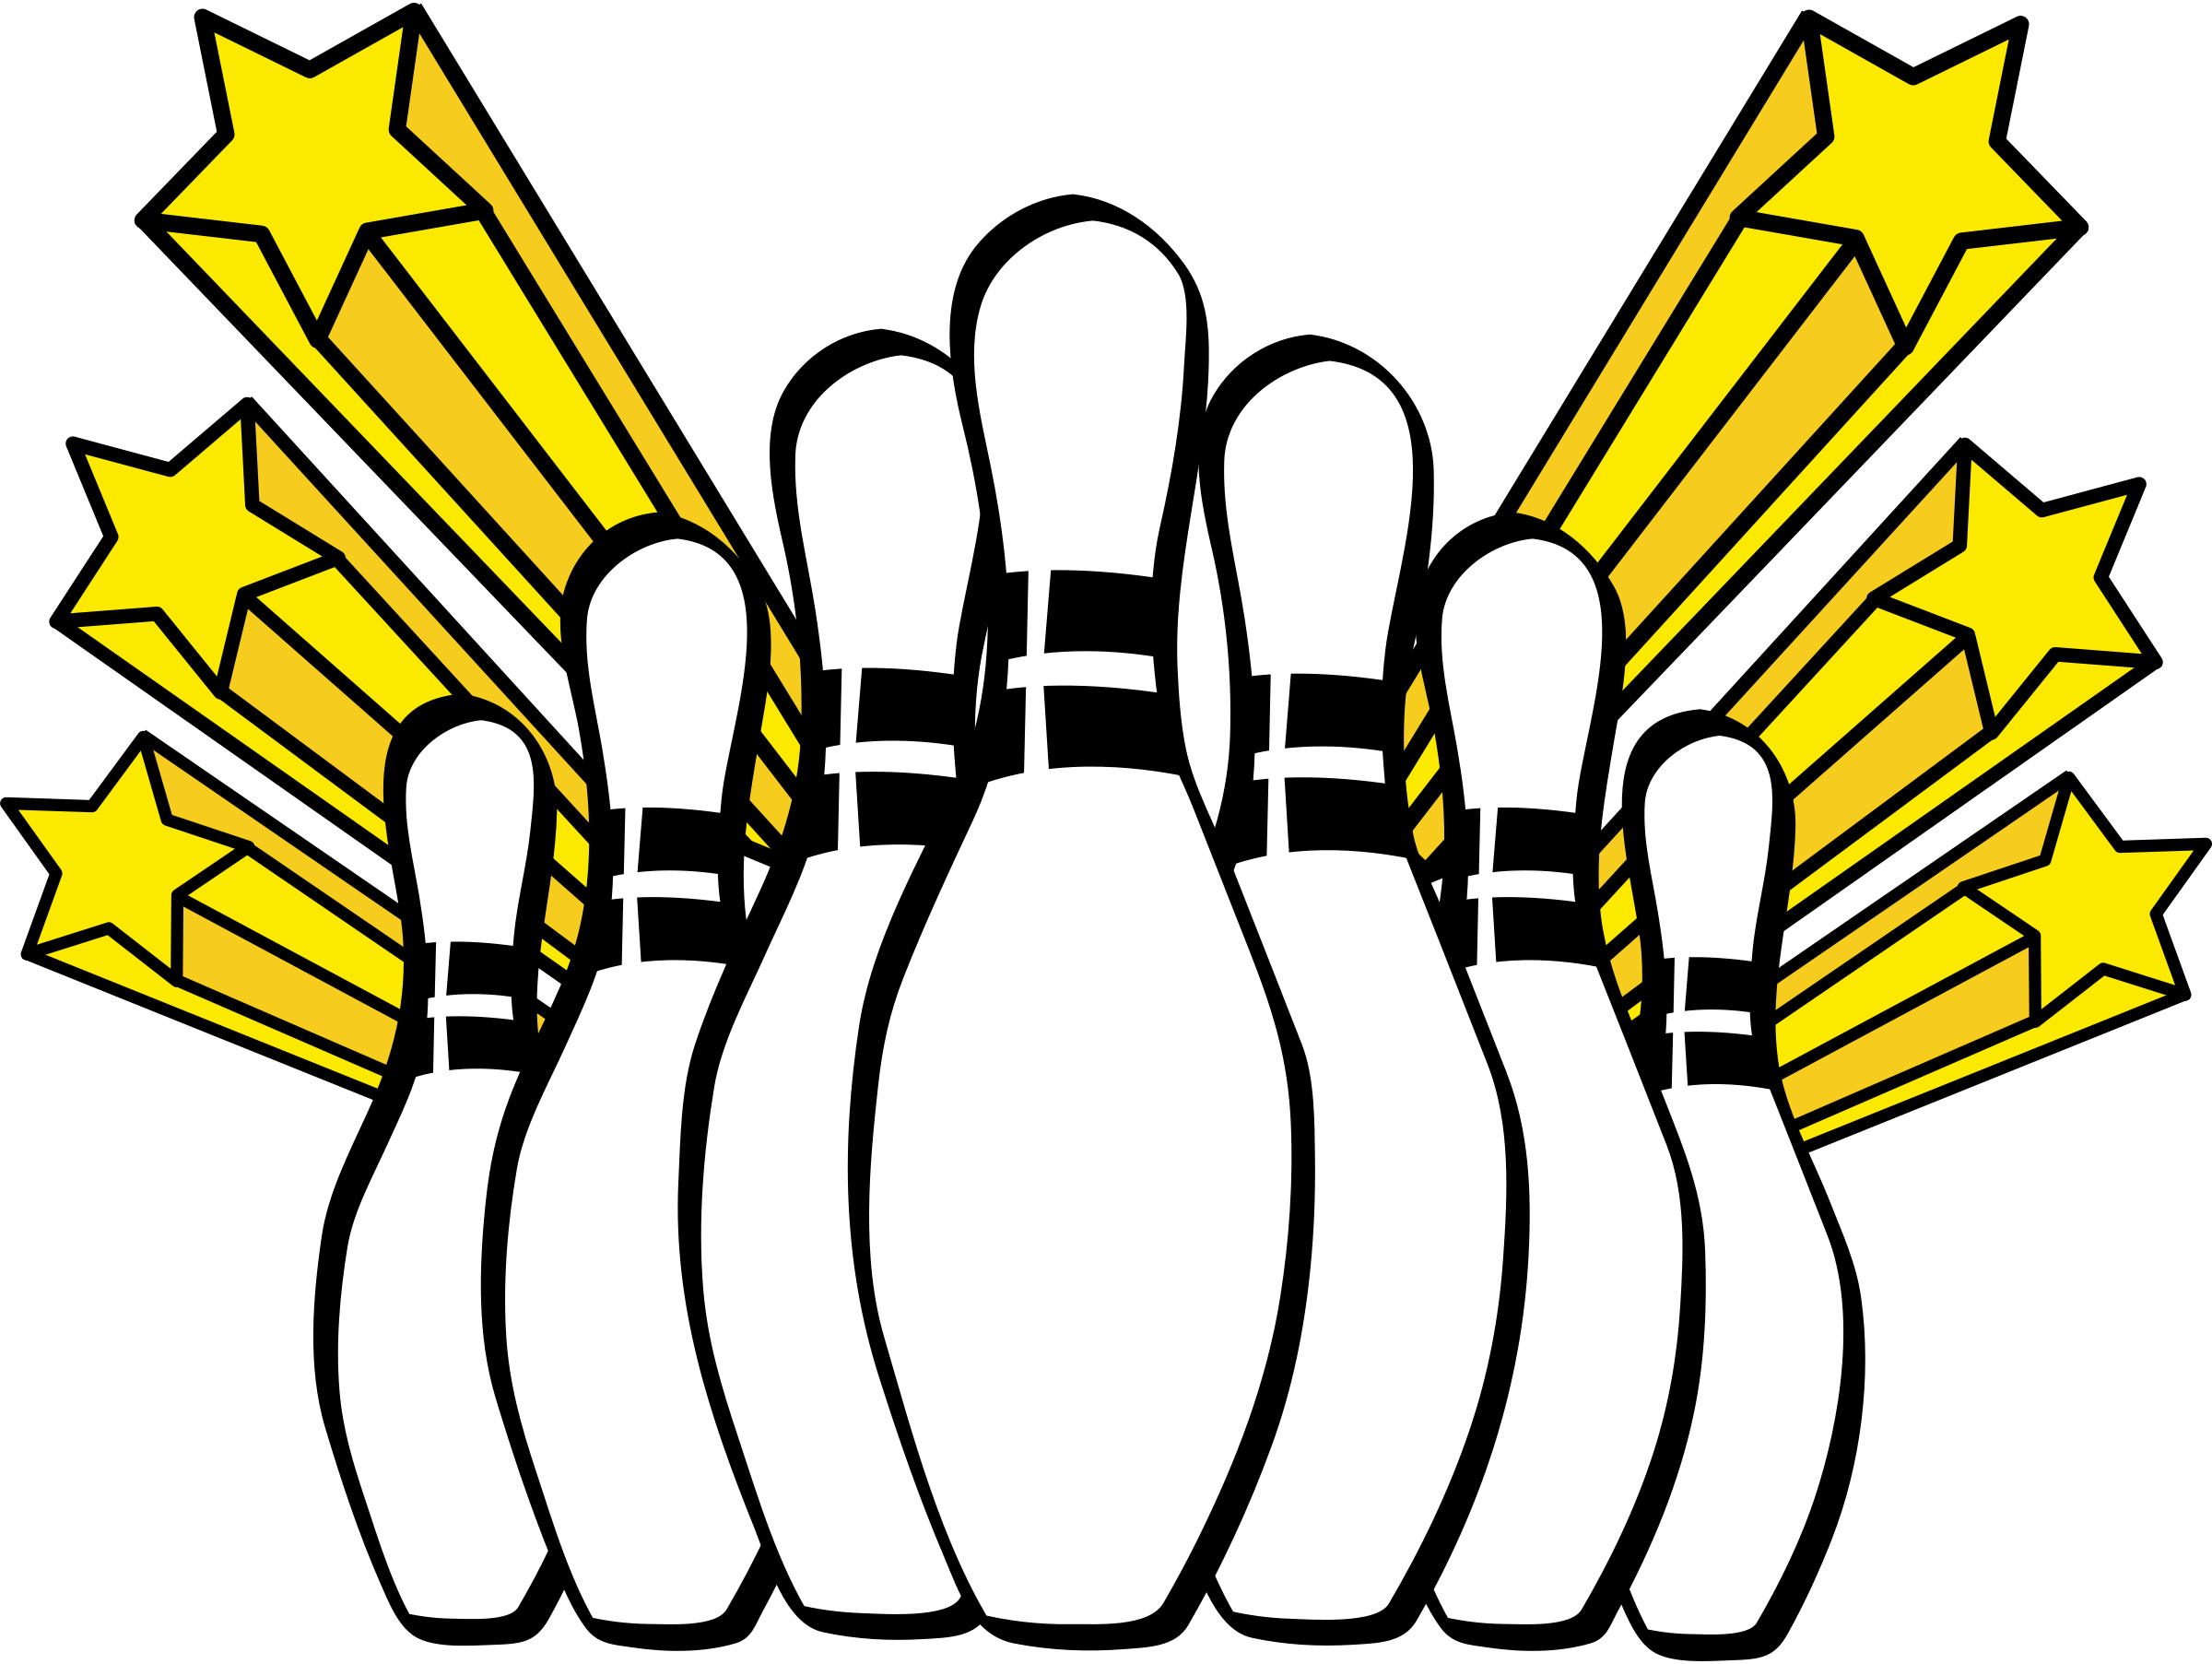 clip download Action clipart drawing. Bowling at getdrawings com